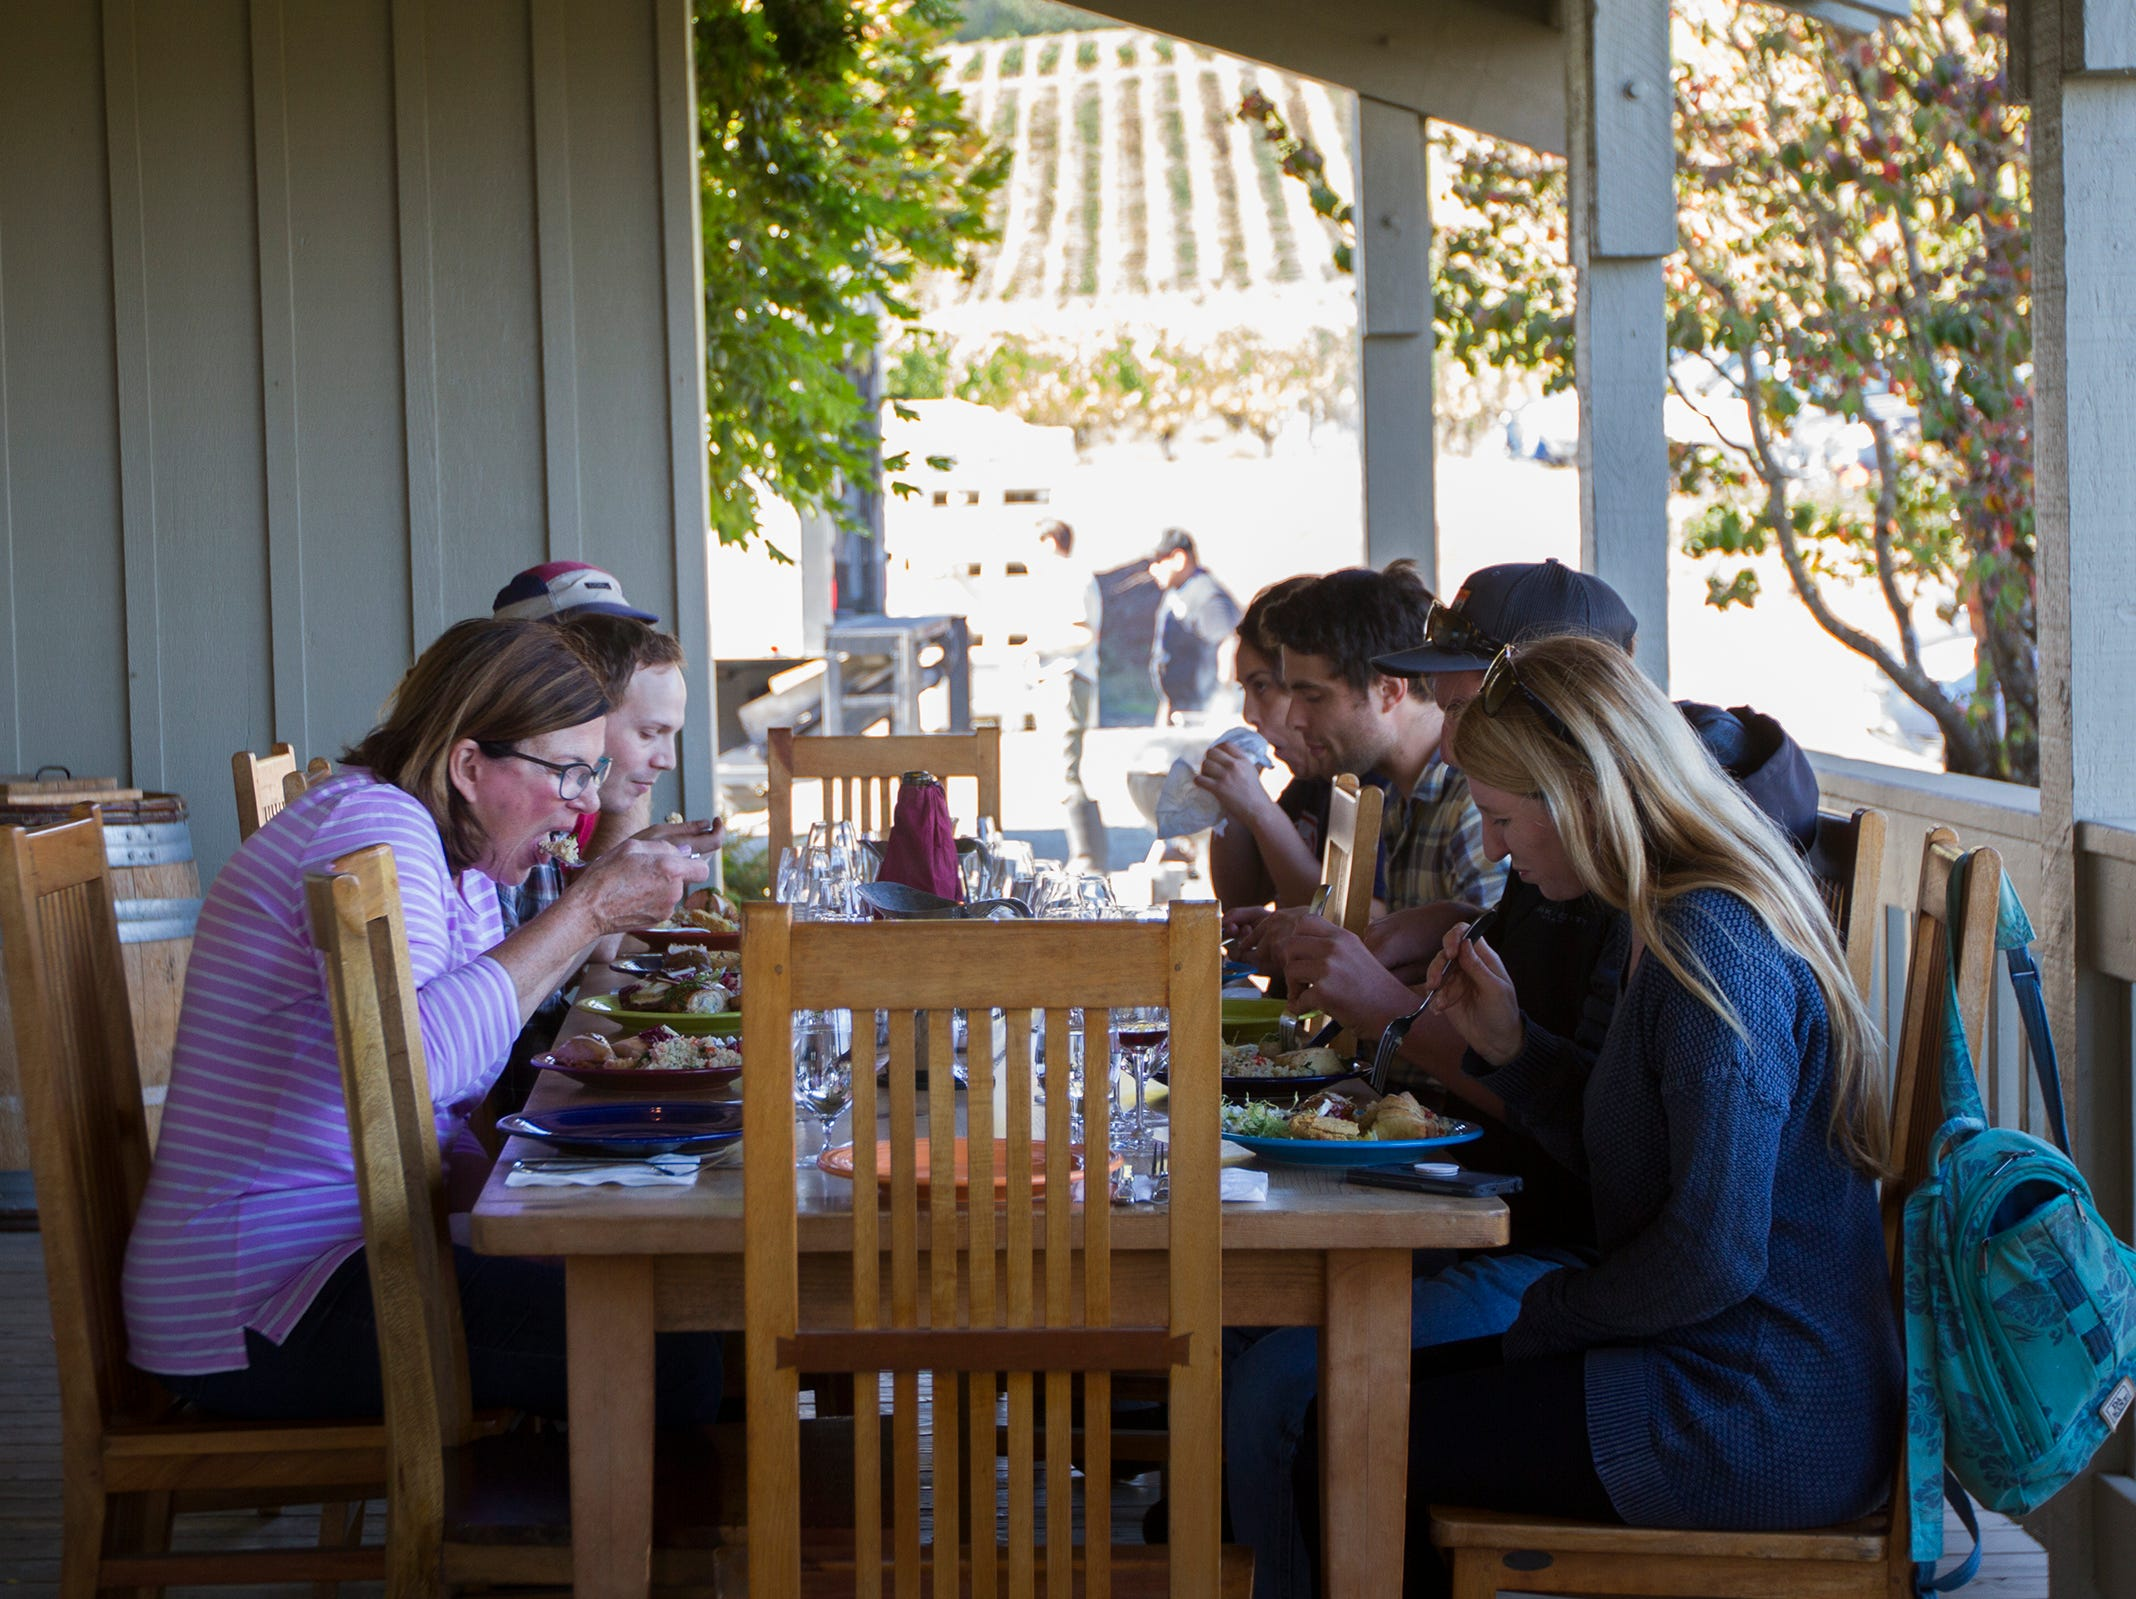 Cristom Winery vineyard workers enjoy a family meal on Tuesday, Oct. 2, 2018. During harvest season Willamette Valley wineries will sometimes hire a chef to cook for a crew working 12-hour days.